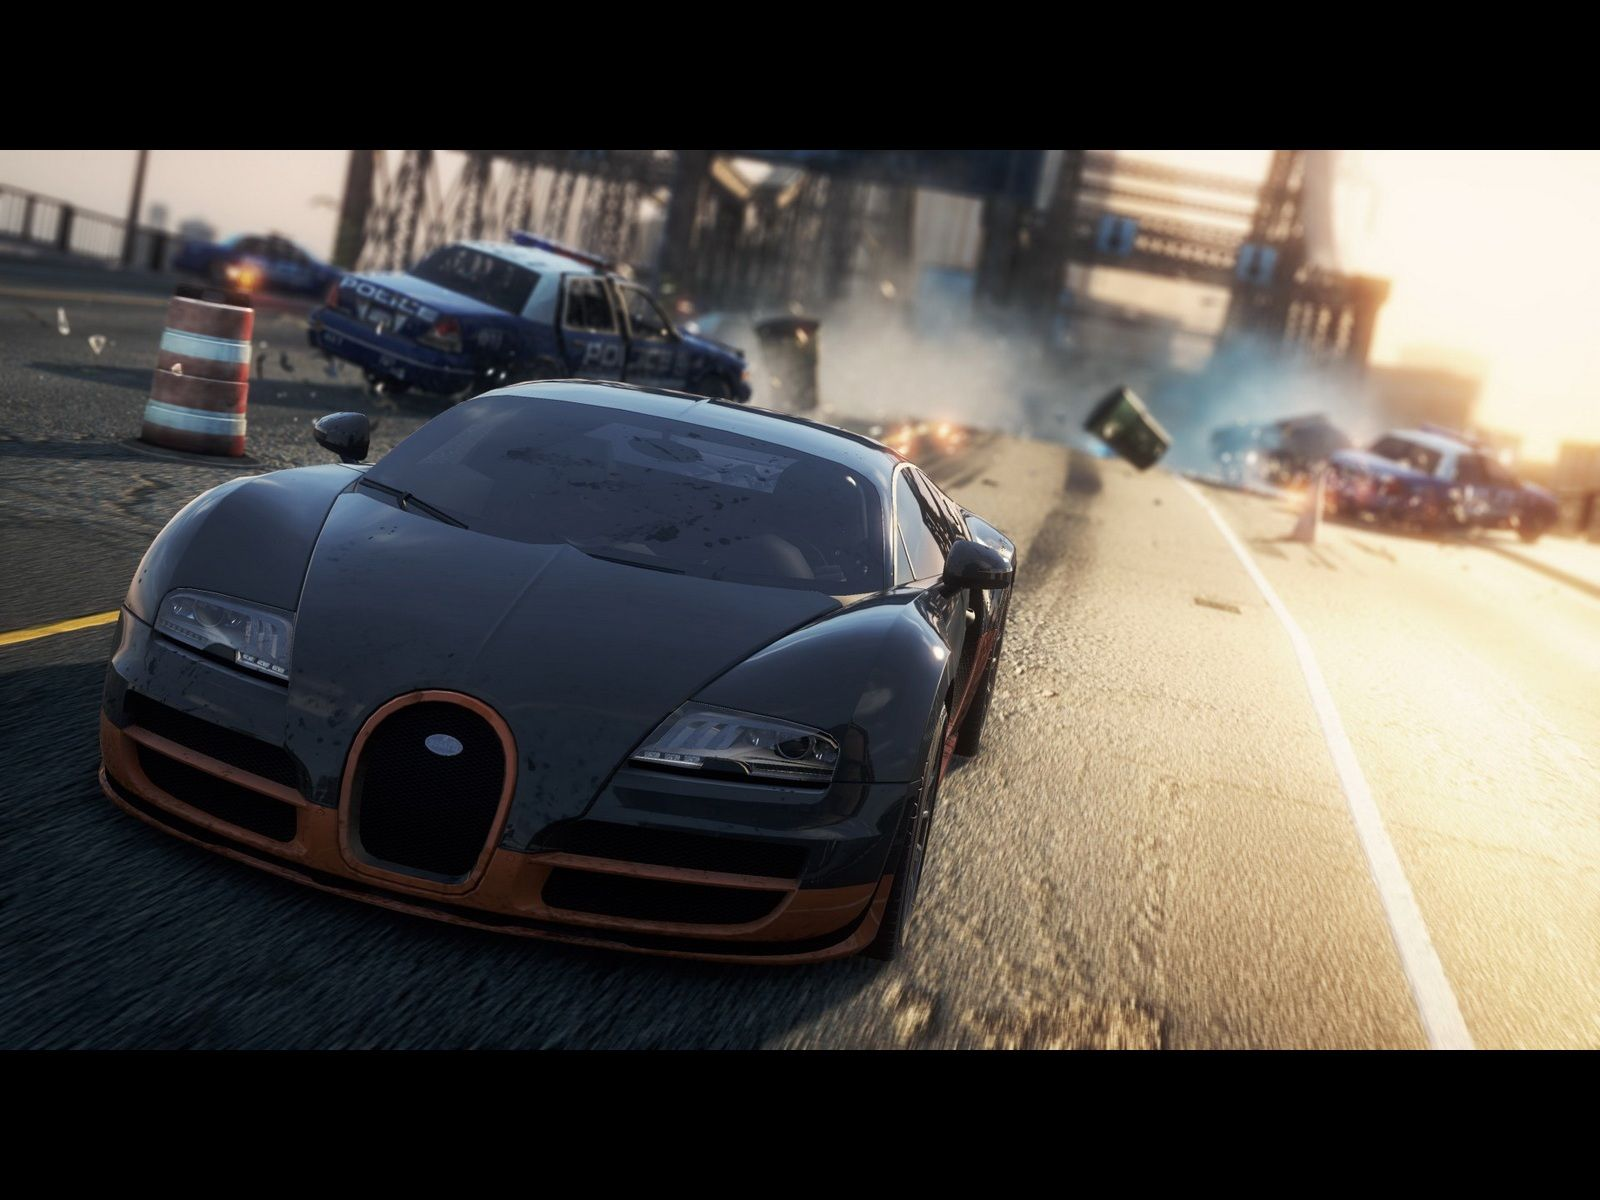 Need For Speed Most Wanted Wallpaper 800x600 Bugatti Veyron Super Sport Bugatti Veyron Bugatti